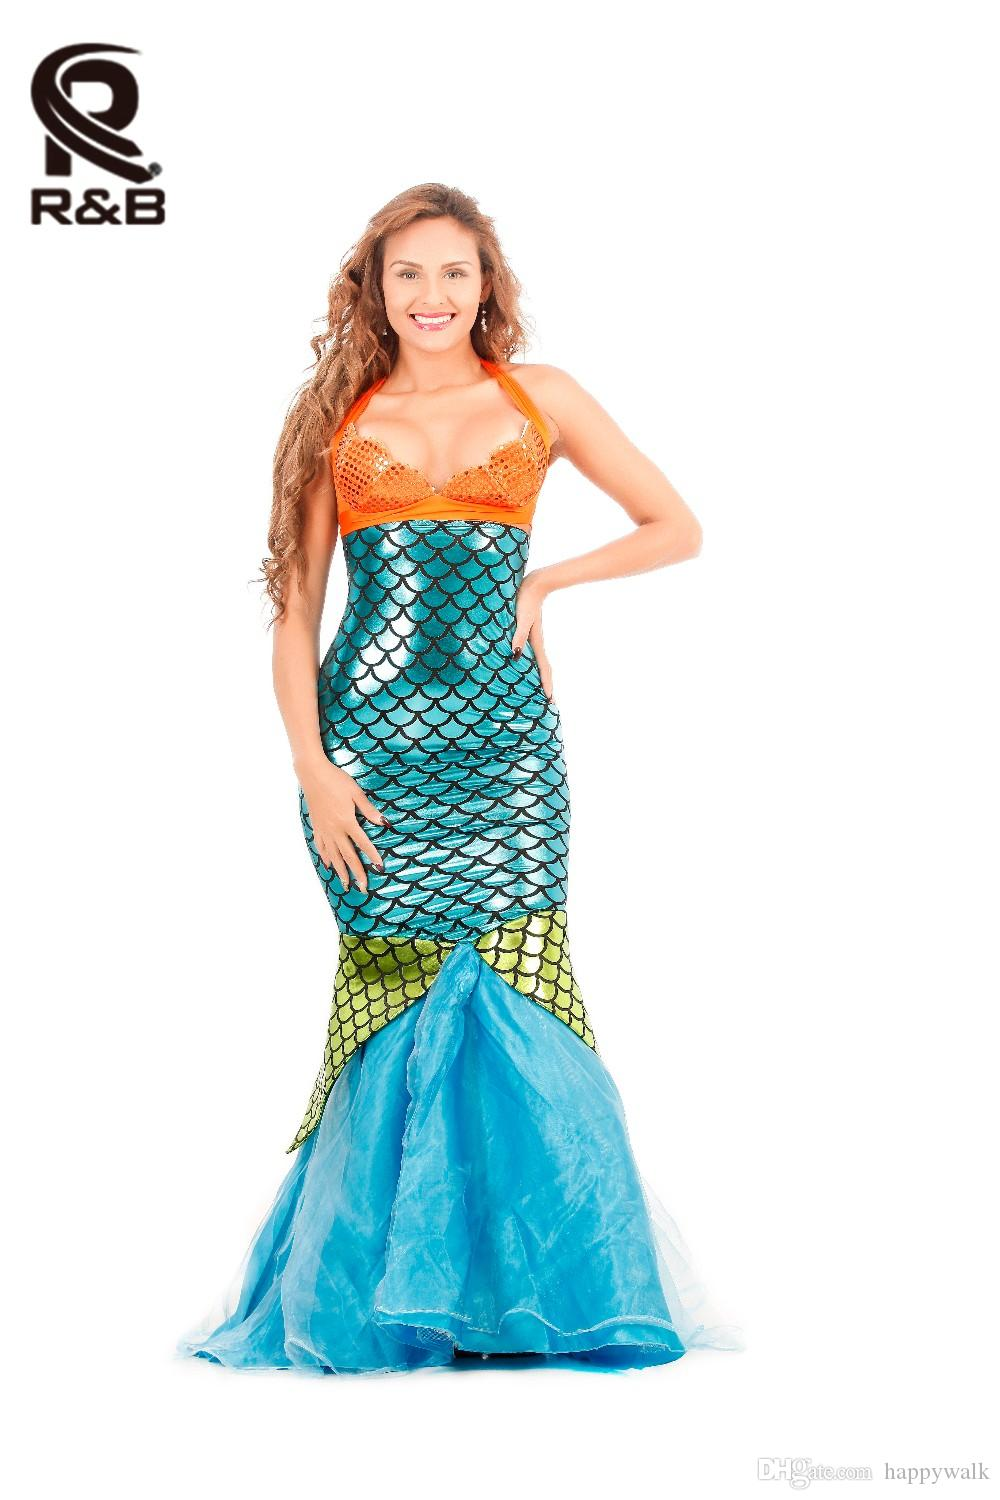 hot sale women sexy mermaid costumes halloween cosplay dress romantic beauty dress sea maid sexy dress woman cosplay polyester costume funny halloween